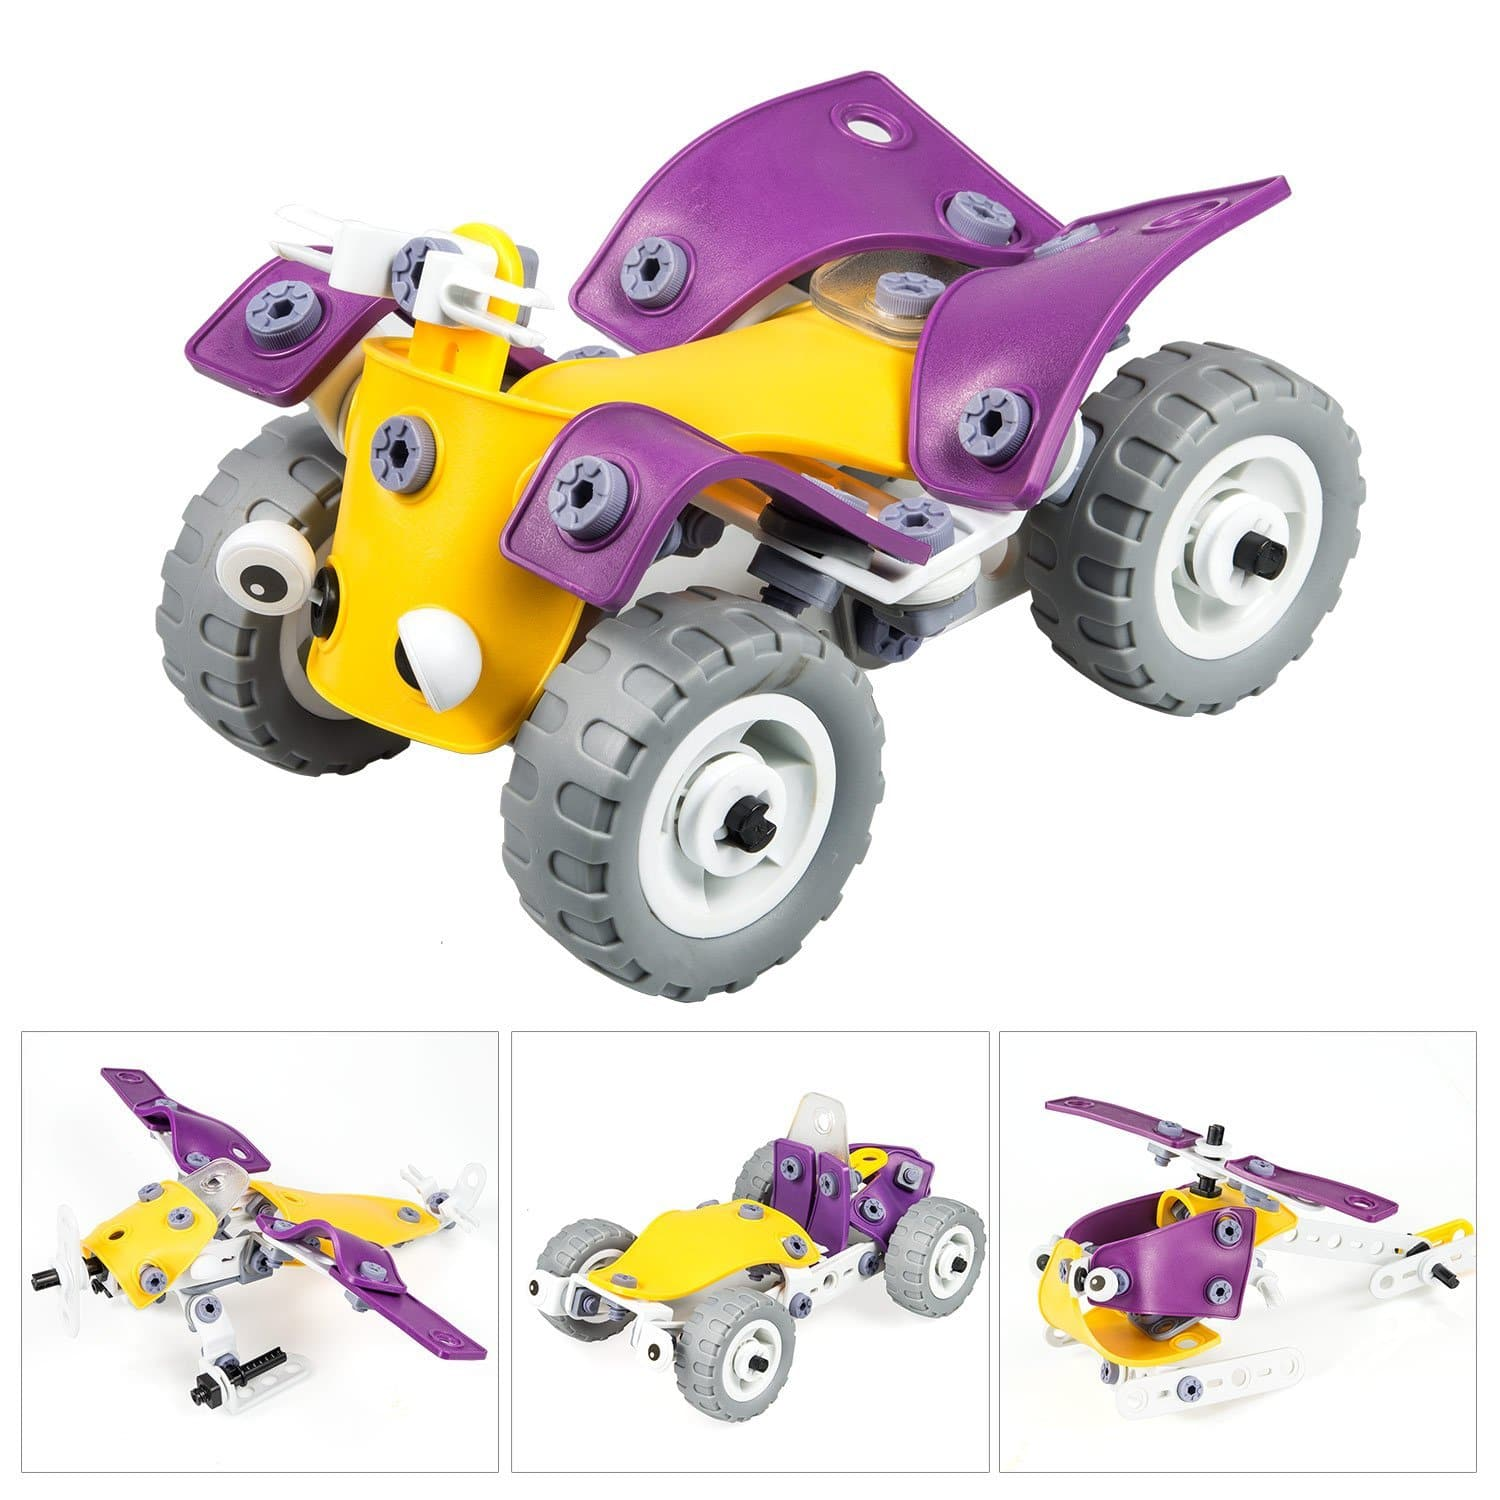 Elover Assembled puzzle Toys-Elover 4 in 1 Building Toys DIY Toys Set Model Cars Motorcycle Helicopter, Gift Concept Toys for kids over 5 years old (100pcs) $13.29